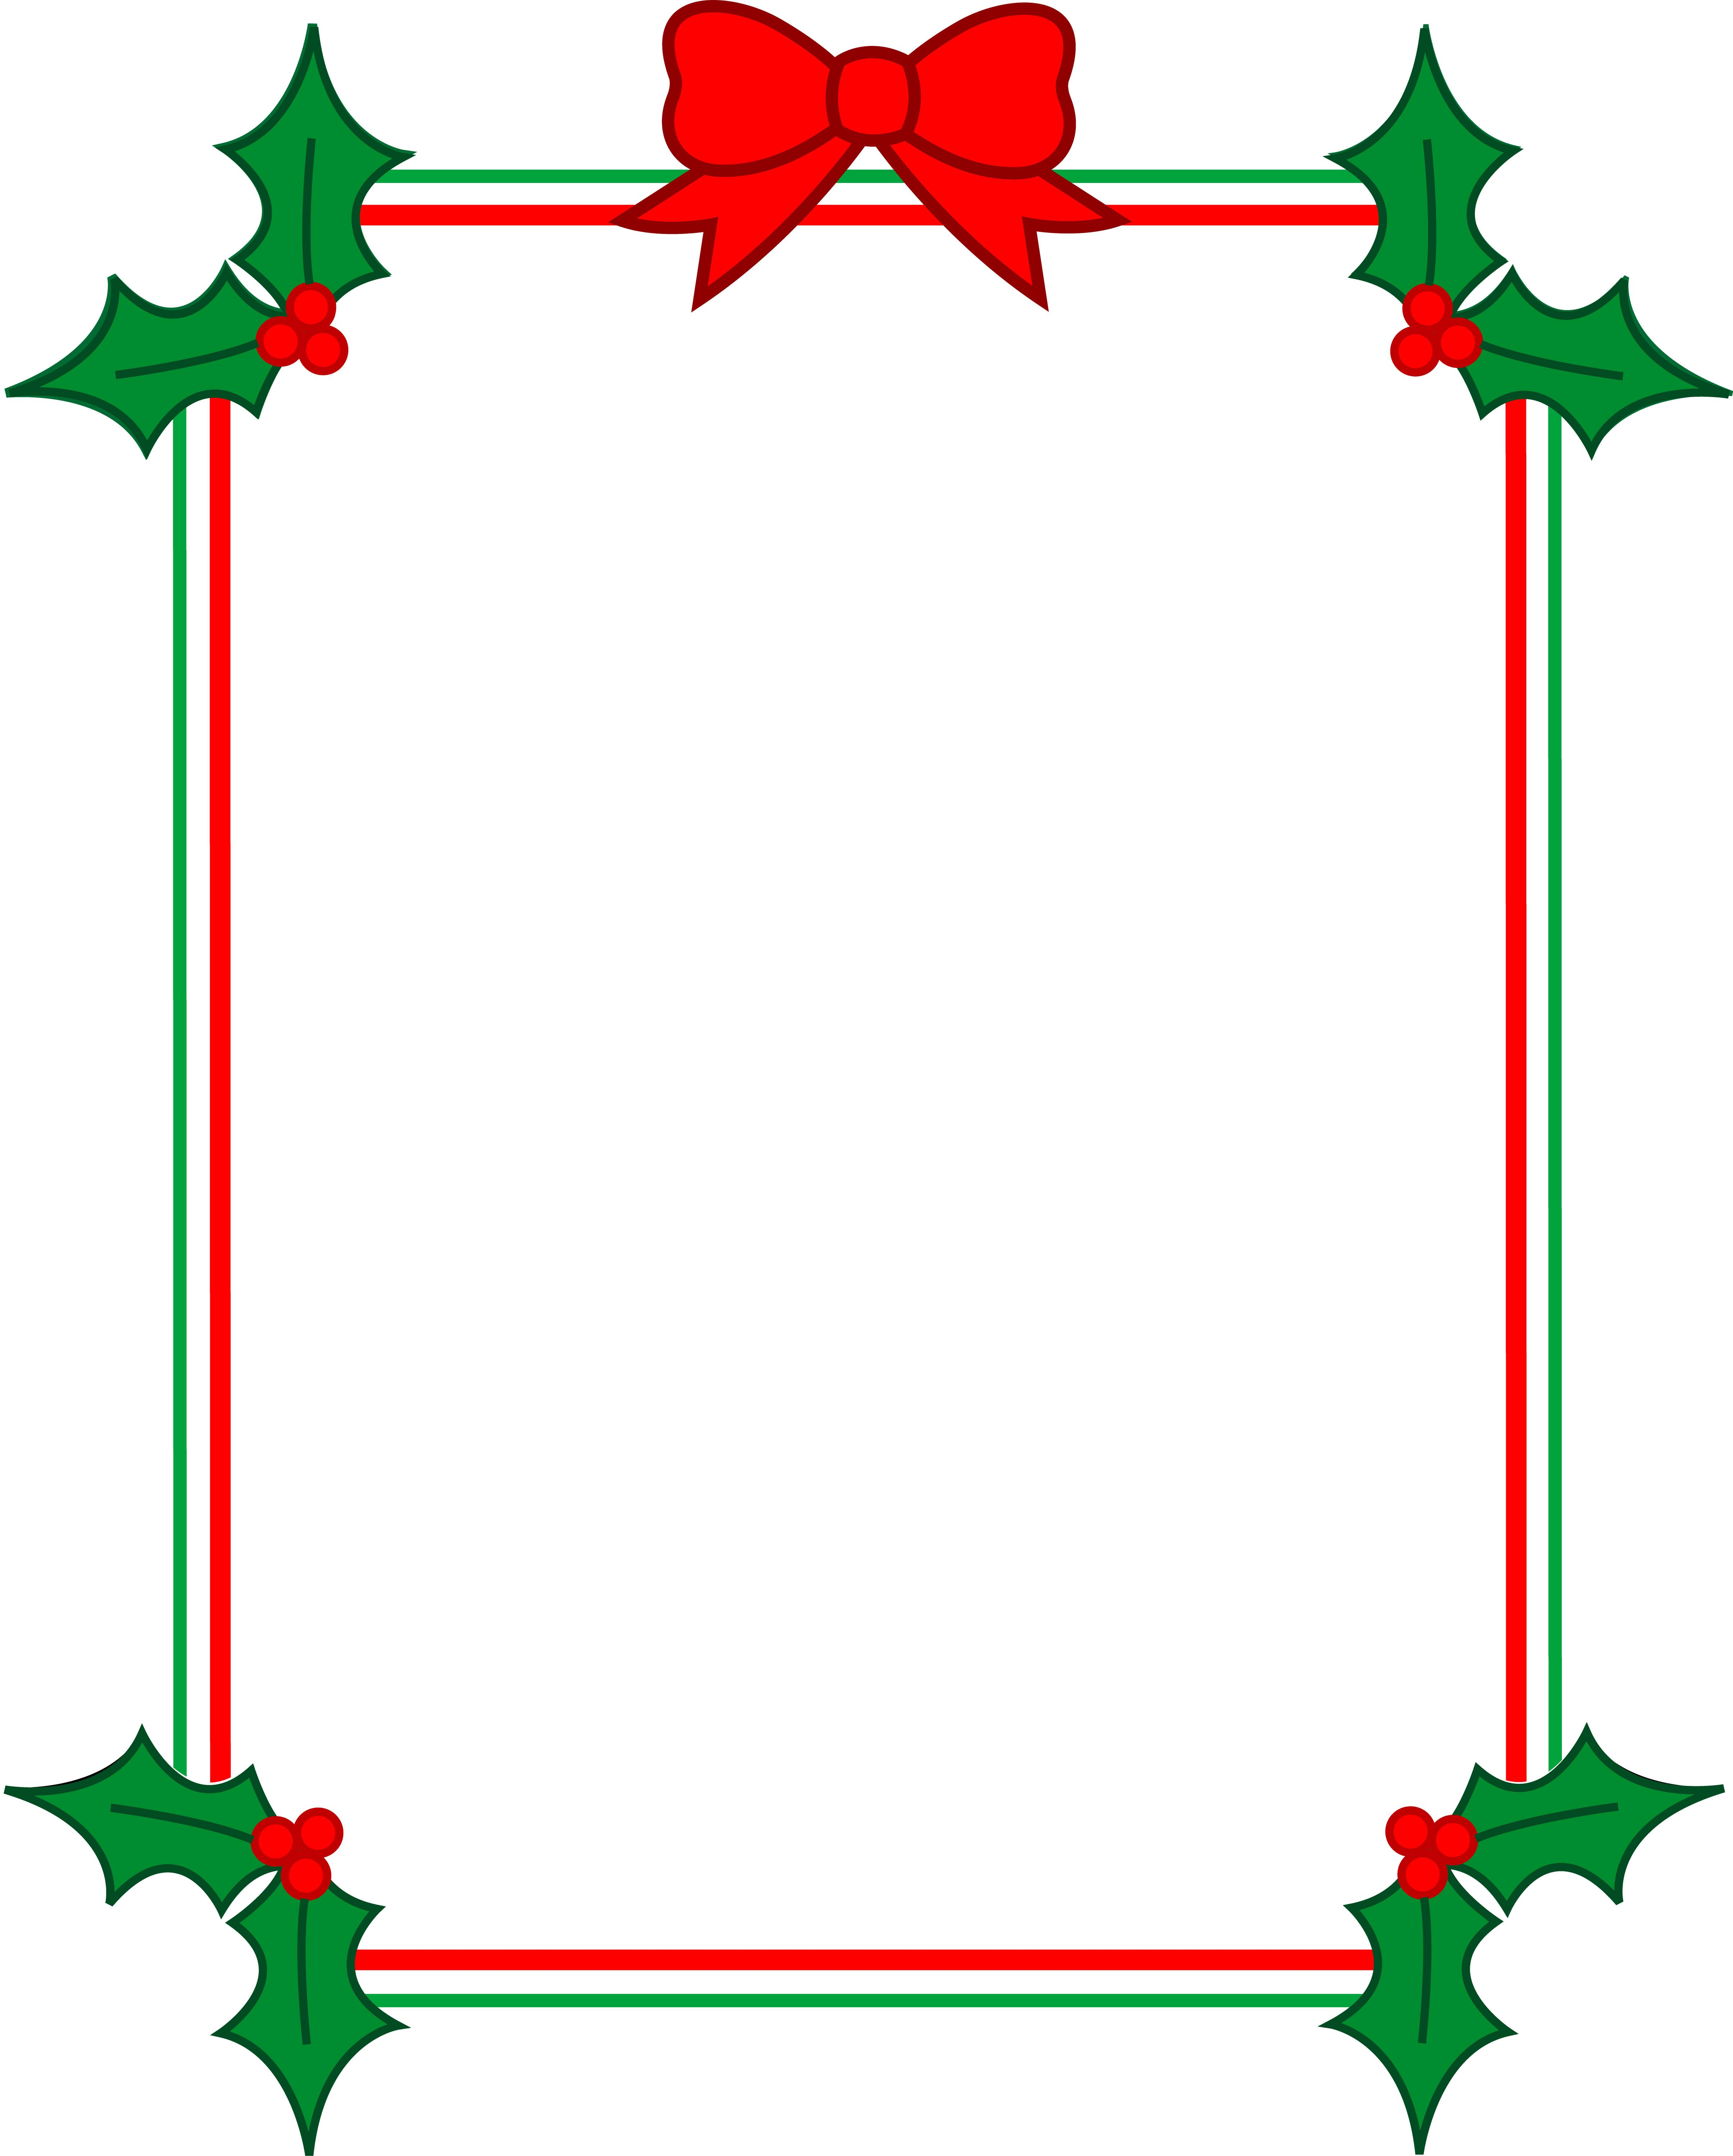 Christmas Border for Free Download